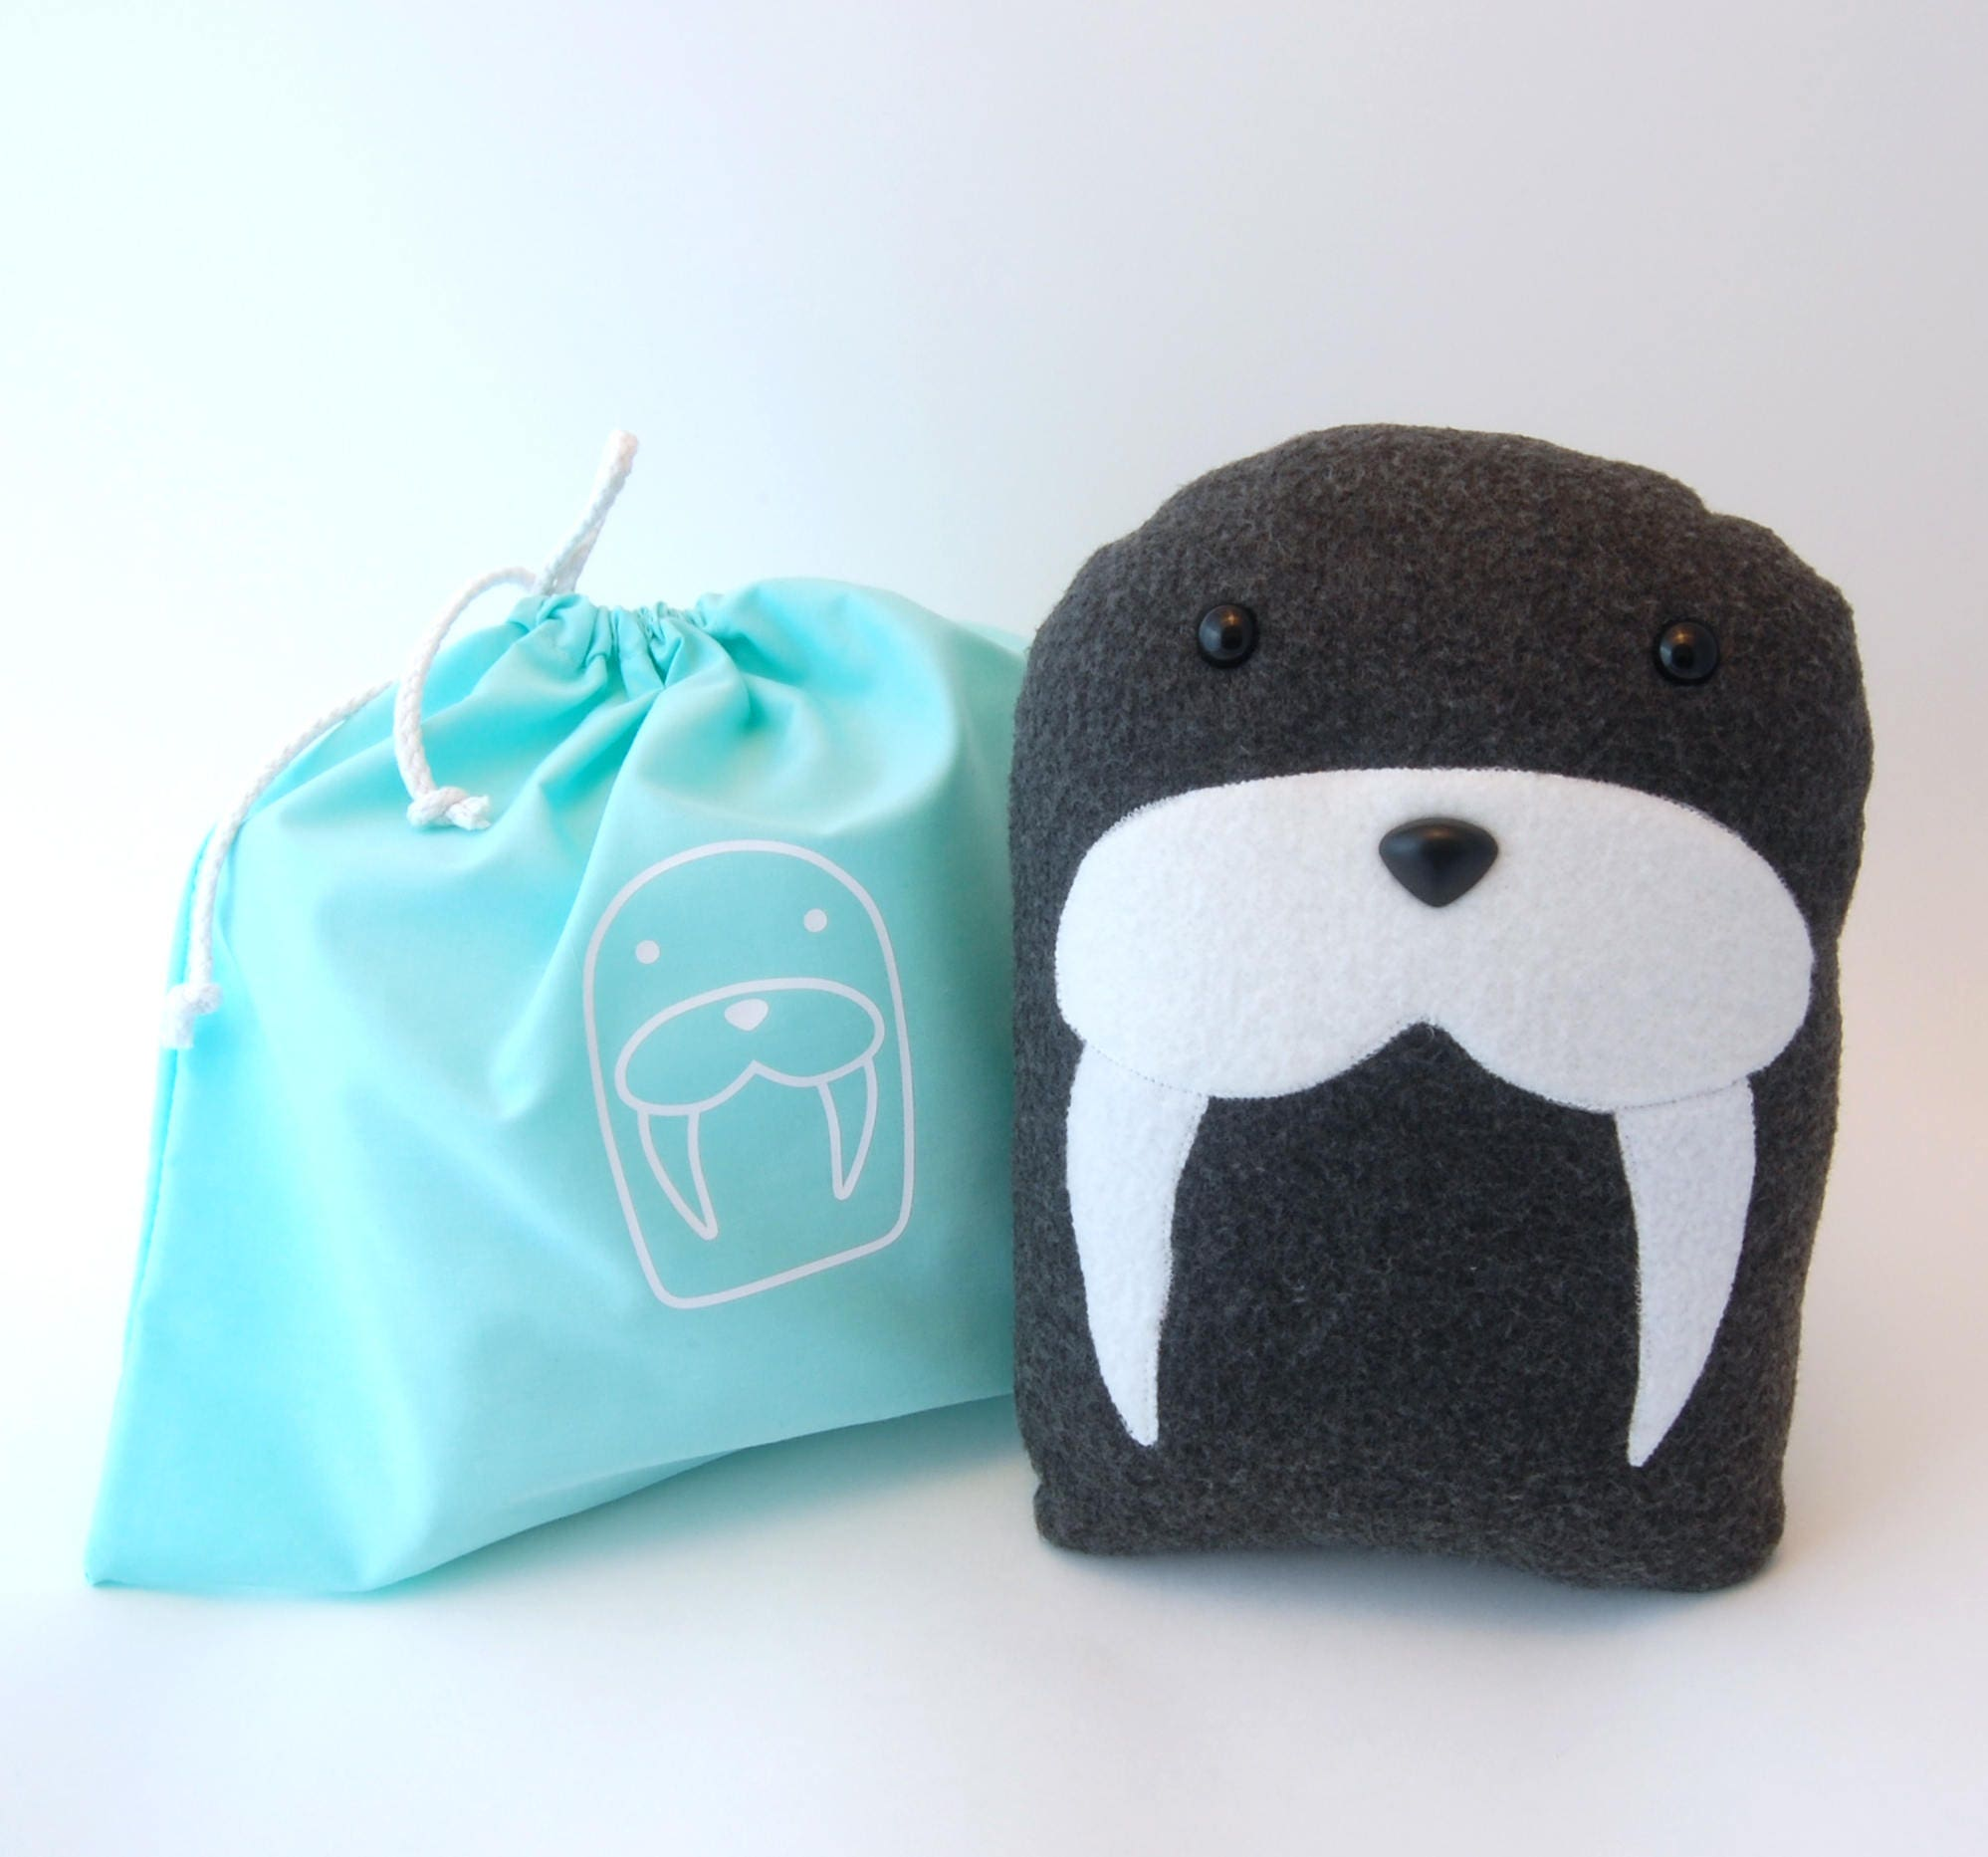 Plush Craft Animal Friends Pillow Kit : DIY Kit Walrus Arctic Pillow Plush - Fleece Fabric Animal Plushie - Do It Yourself Craft for ...